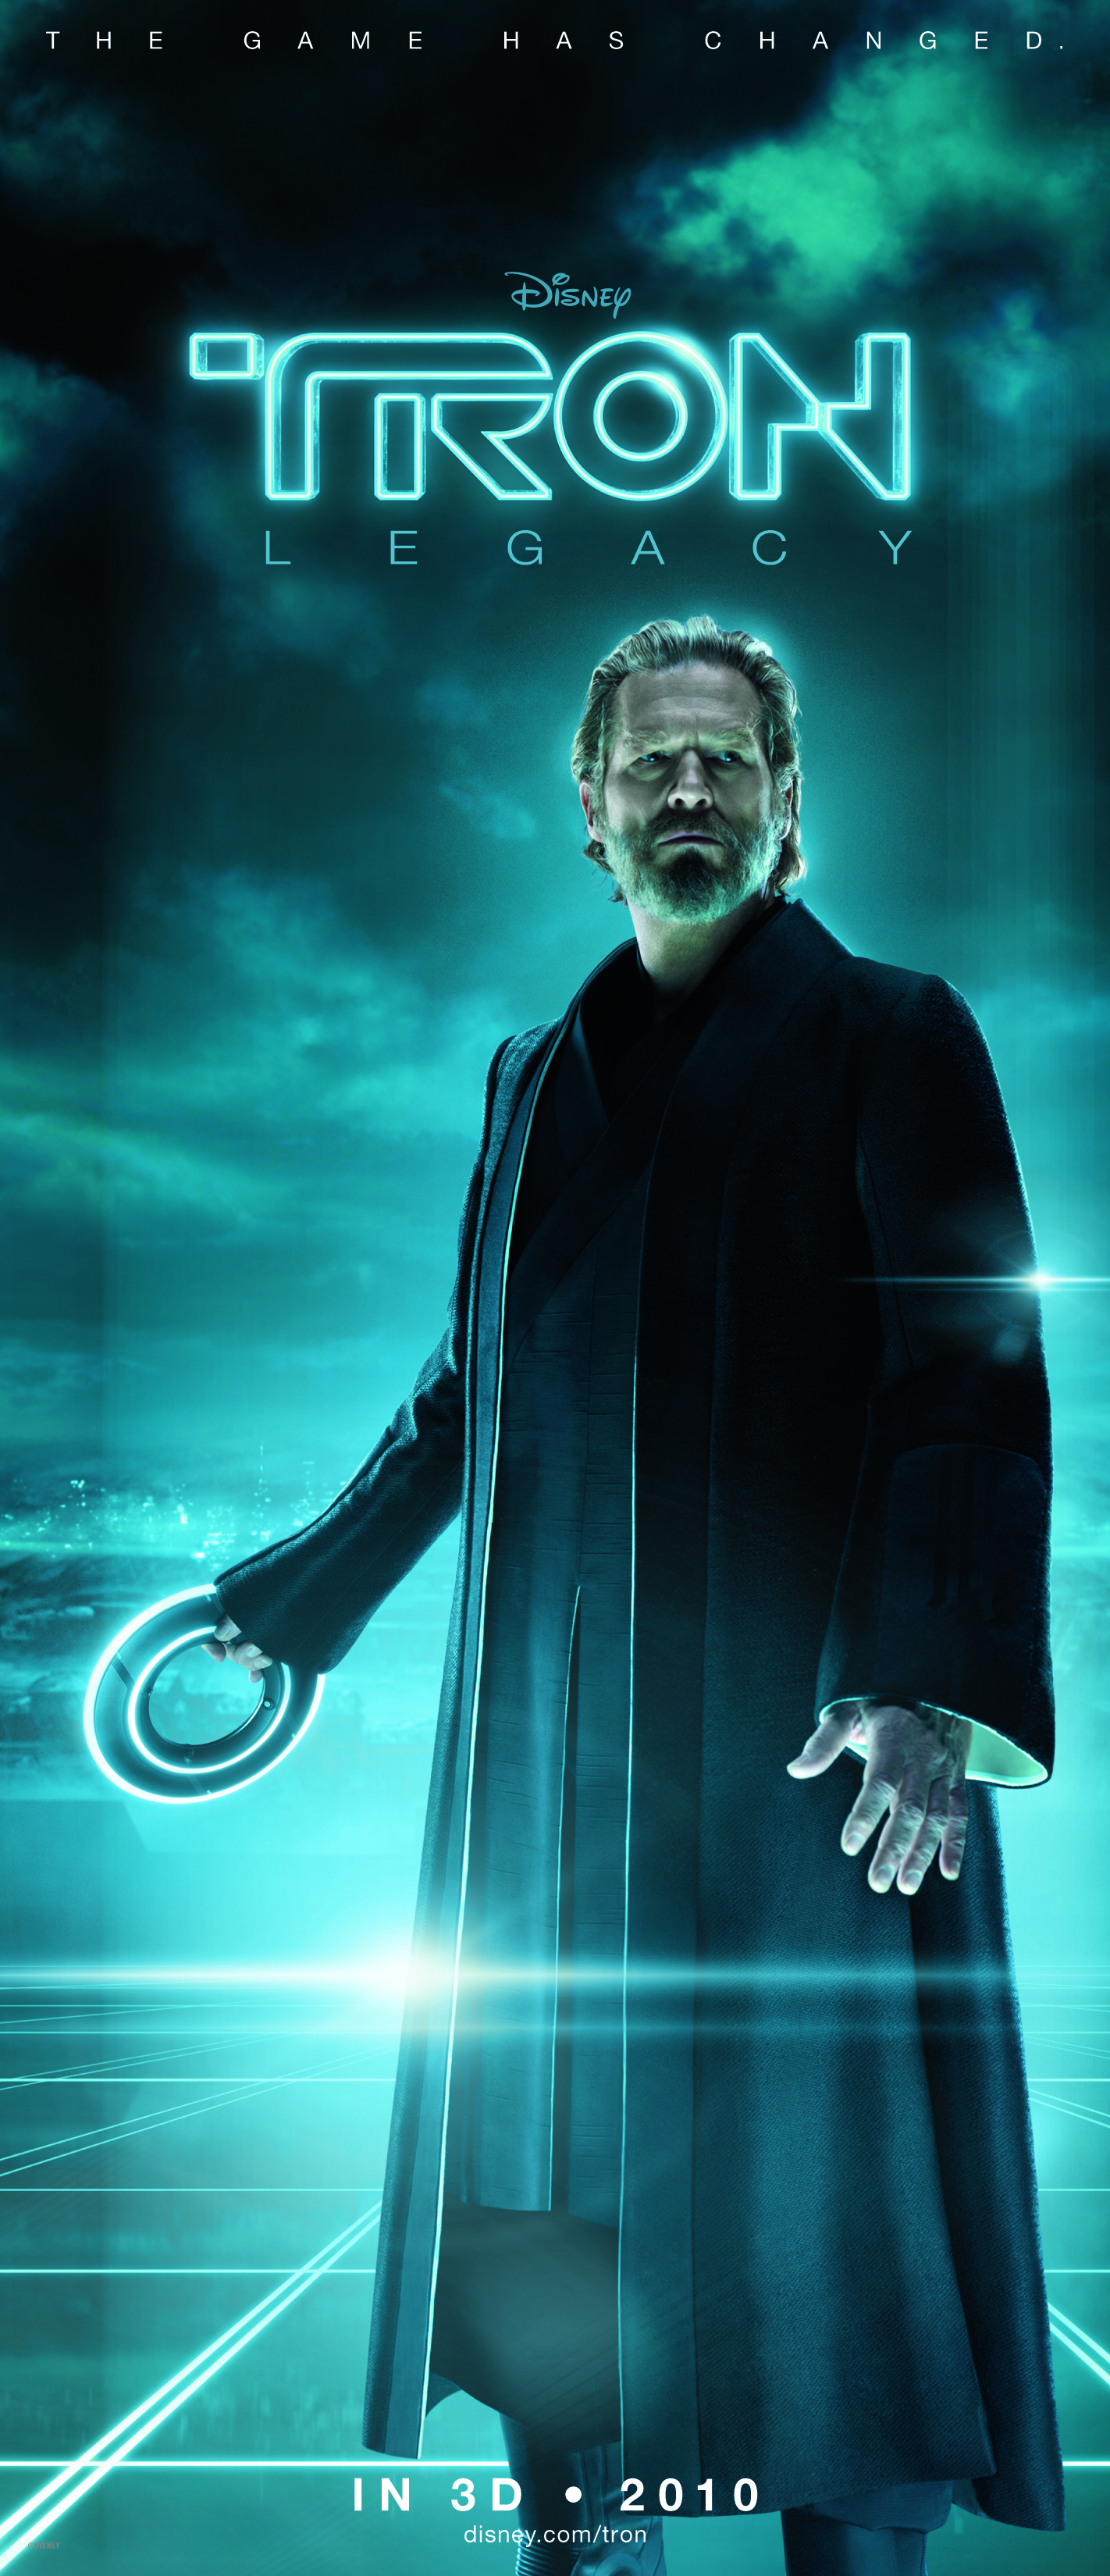 image - tron legacy poster 08 | disney wiki | fandom powered